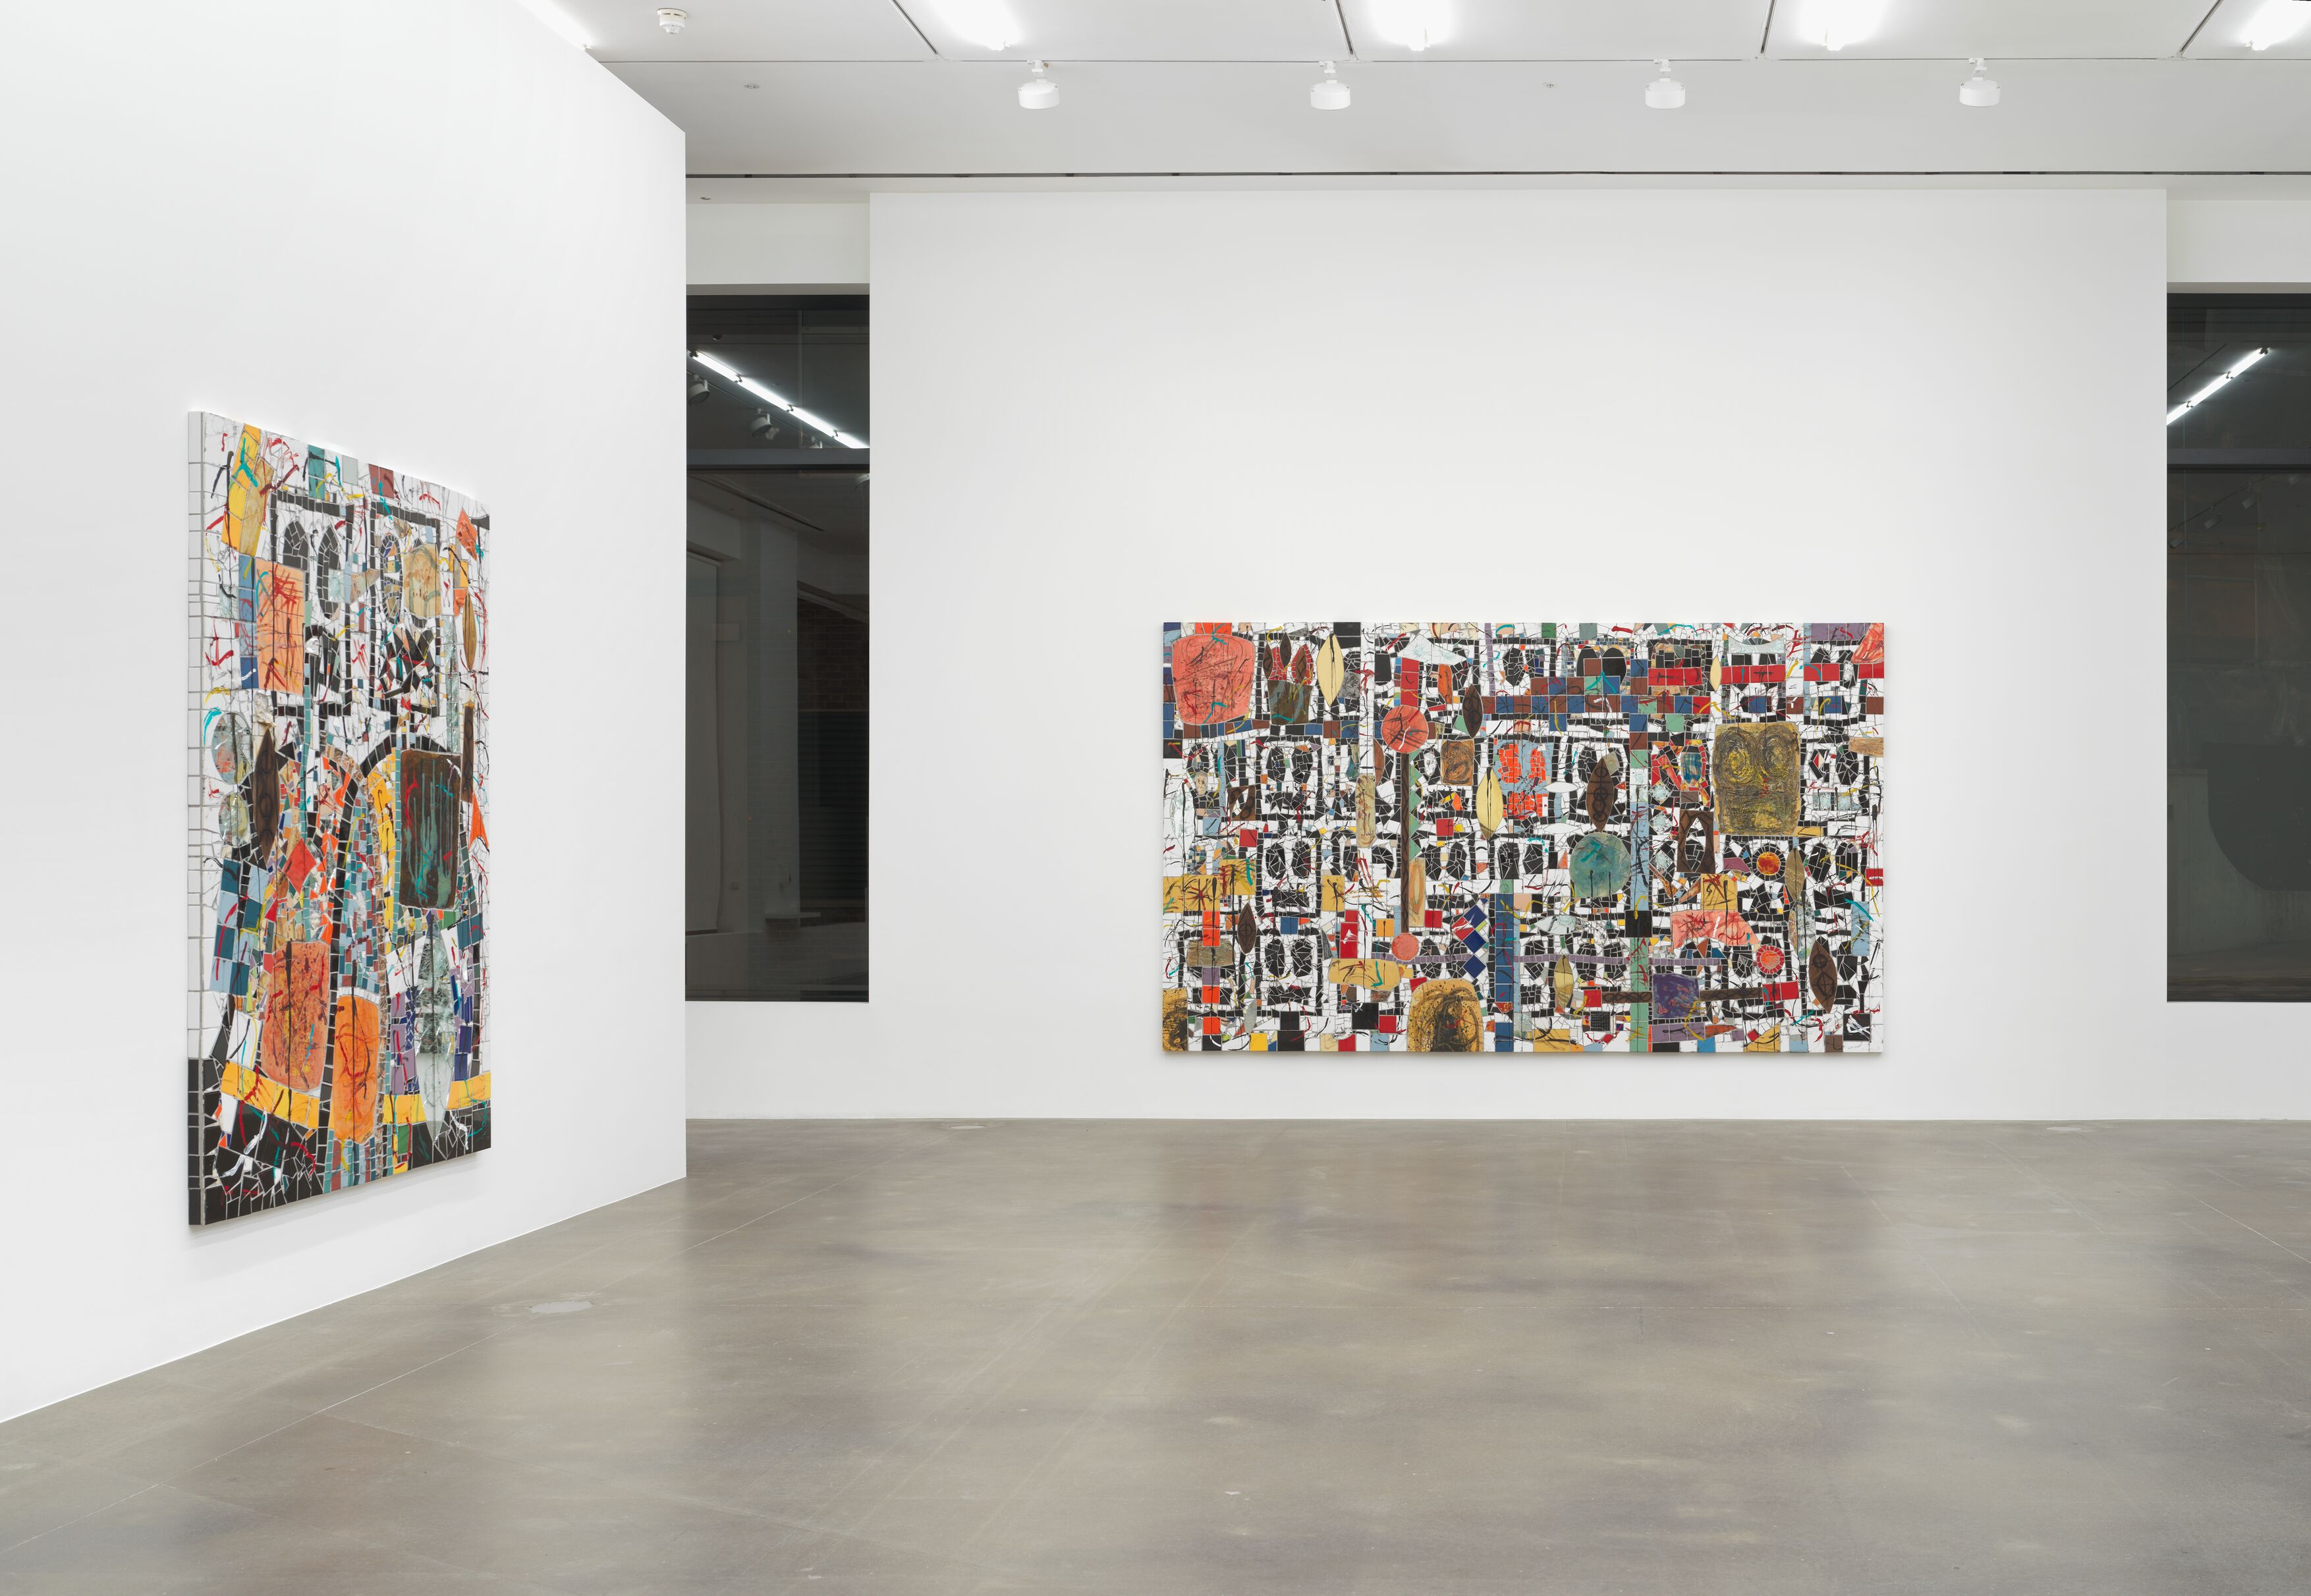 Installation view 3, Rashid Johnson, Waves, Hauser & Wirth London, Courtesy of the artist and Hauser & Wirth